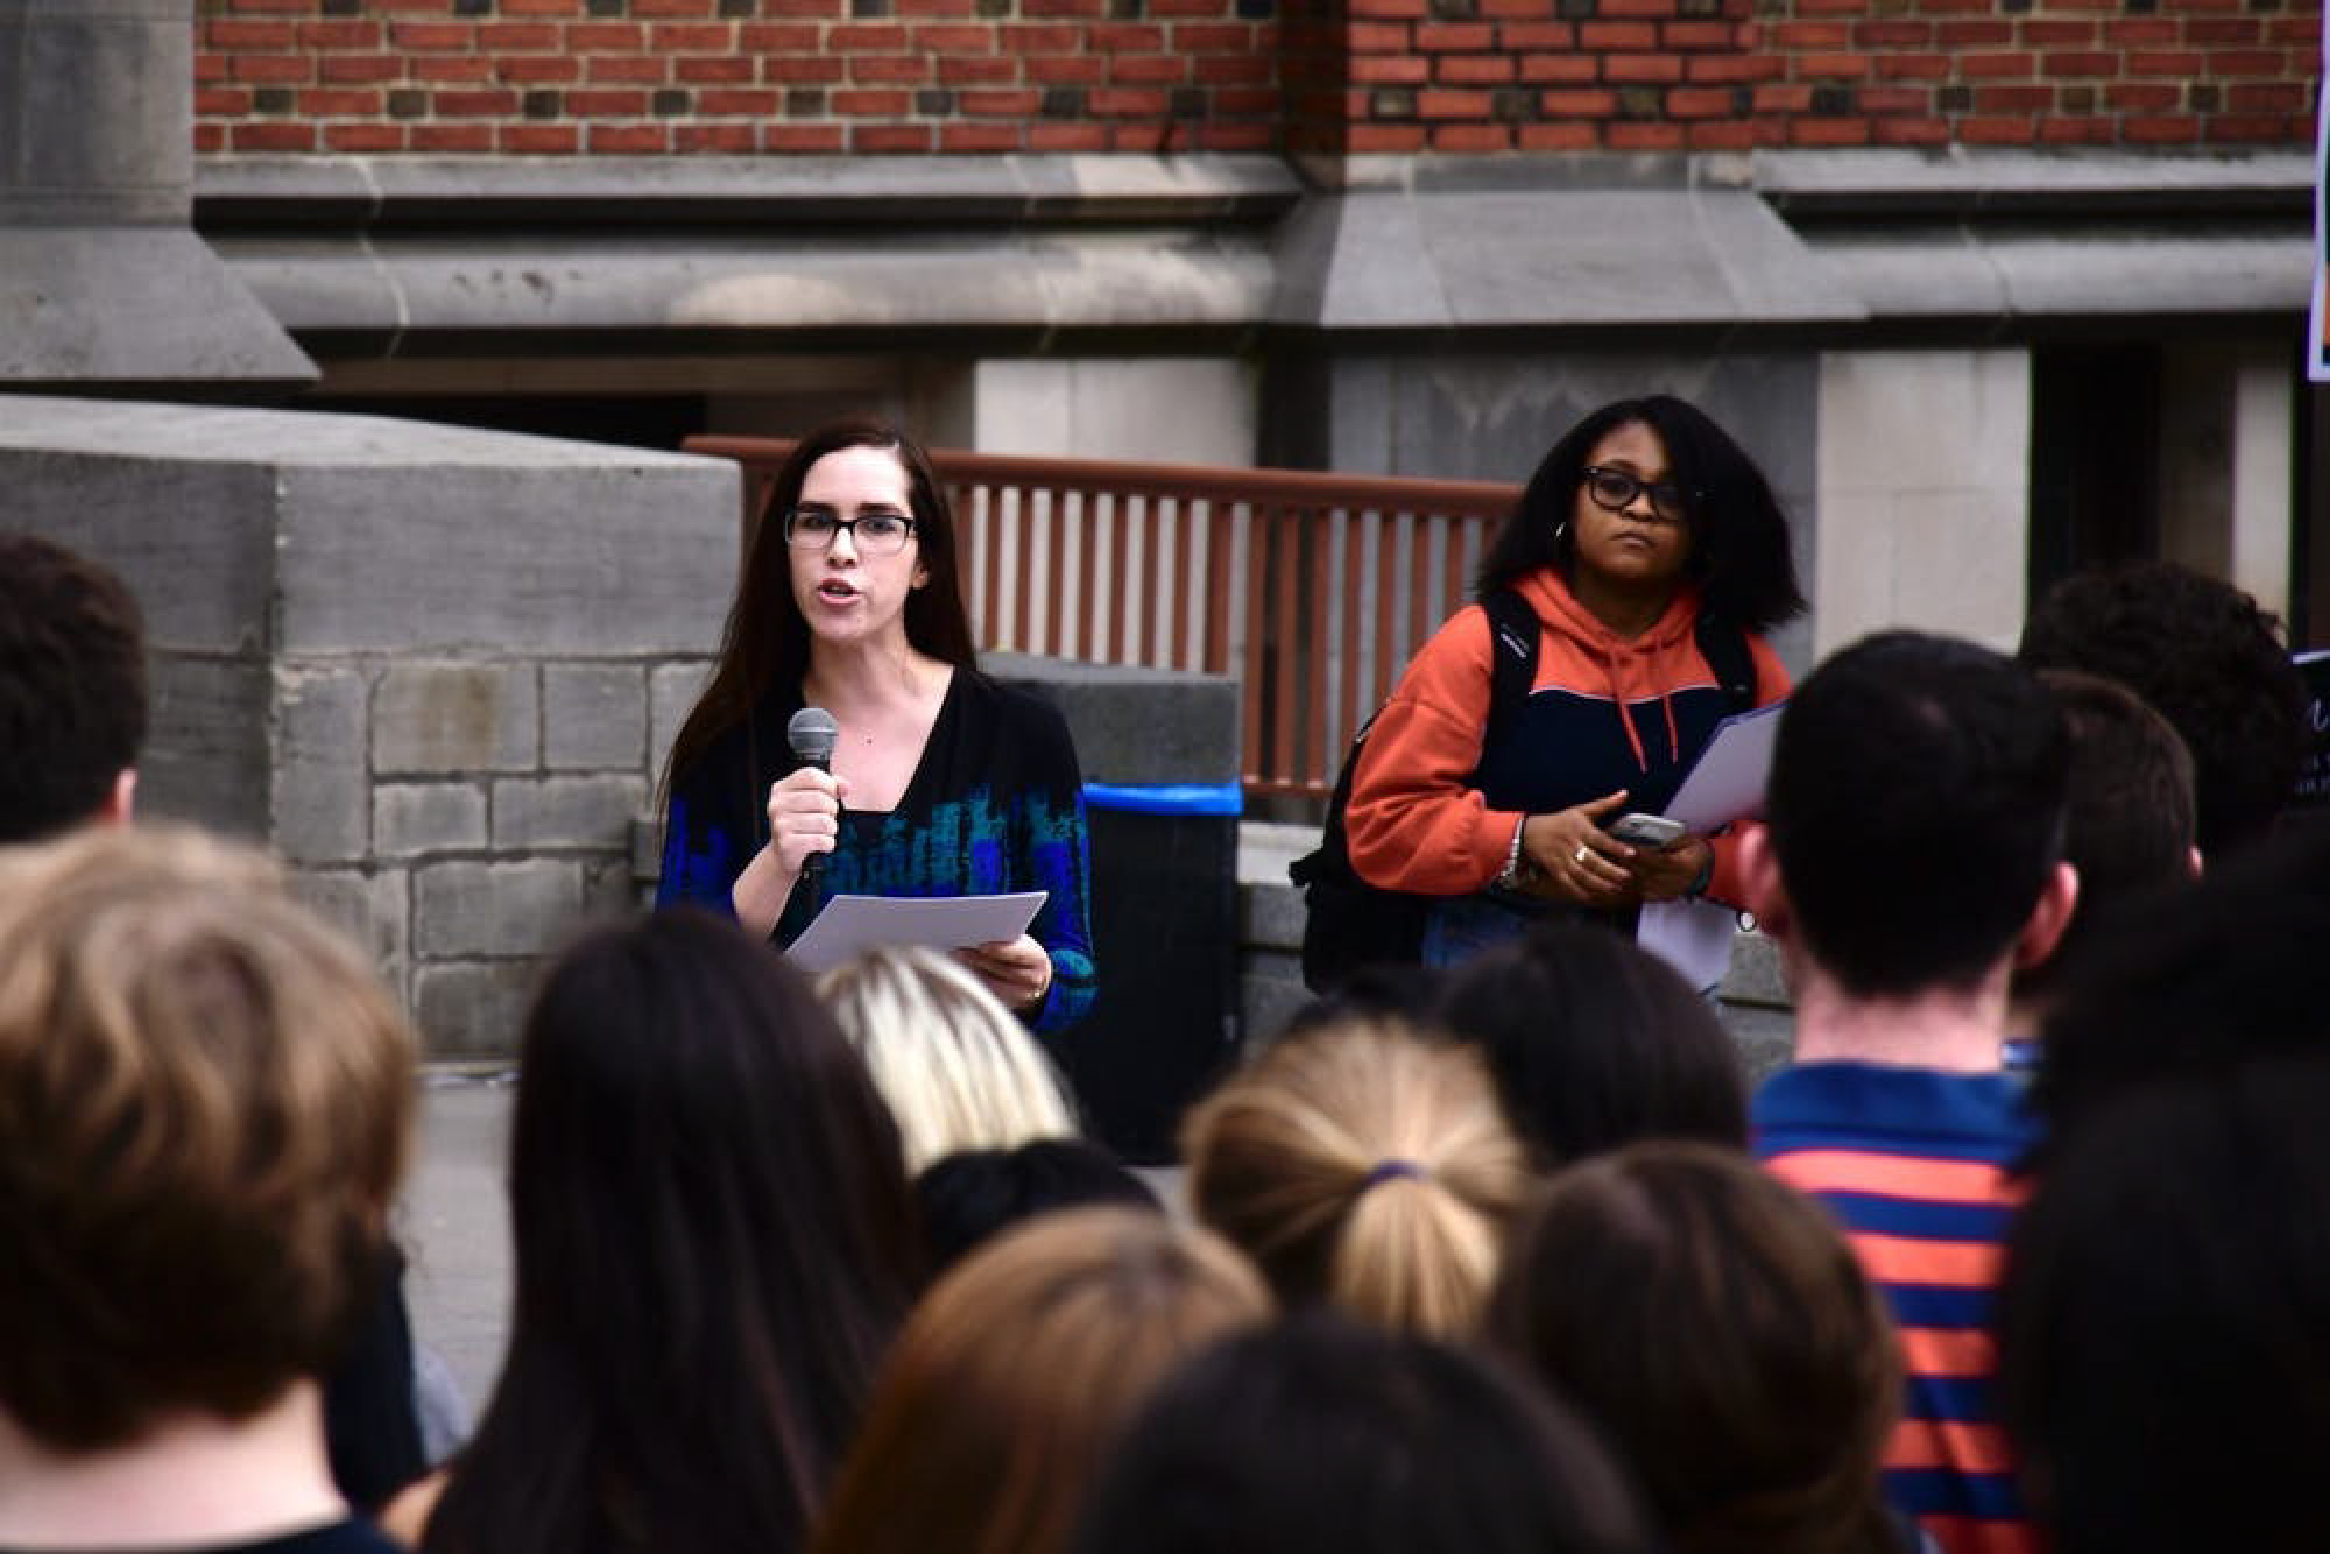 Students with microphones addressing a crowd outside of Frist Campus Center during a 2019 SPEAR event.